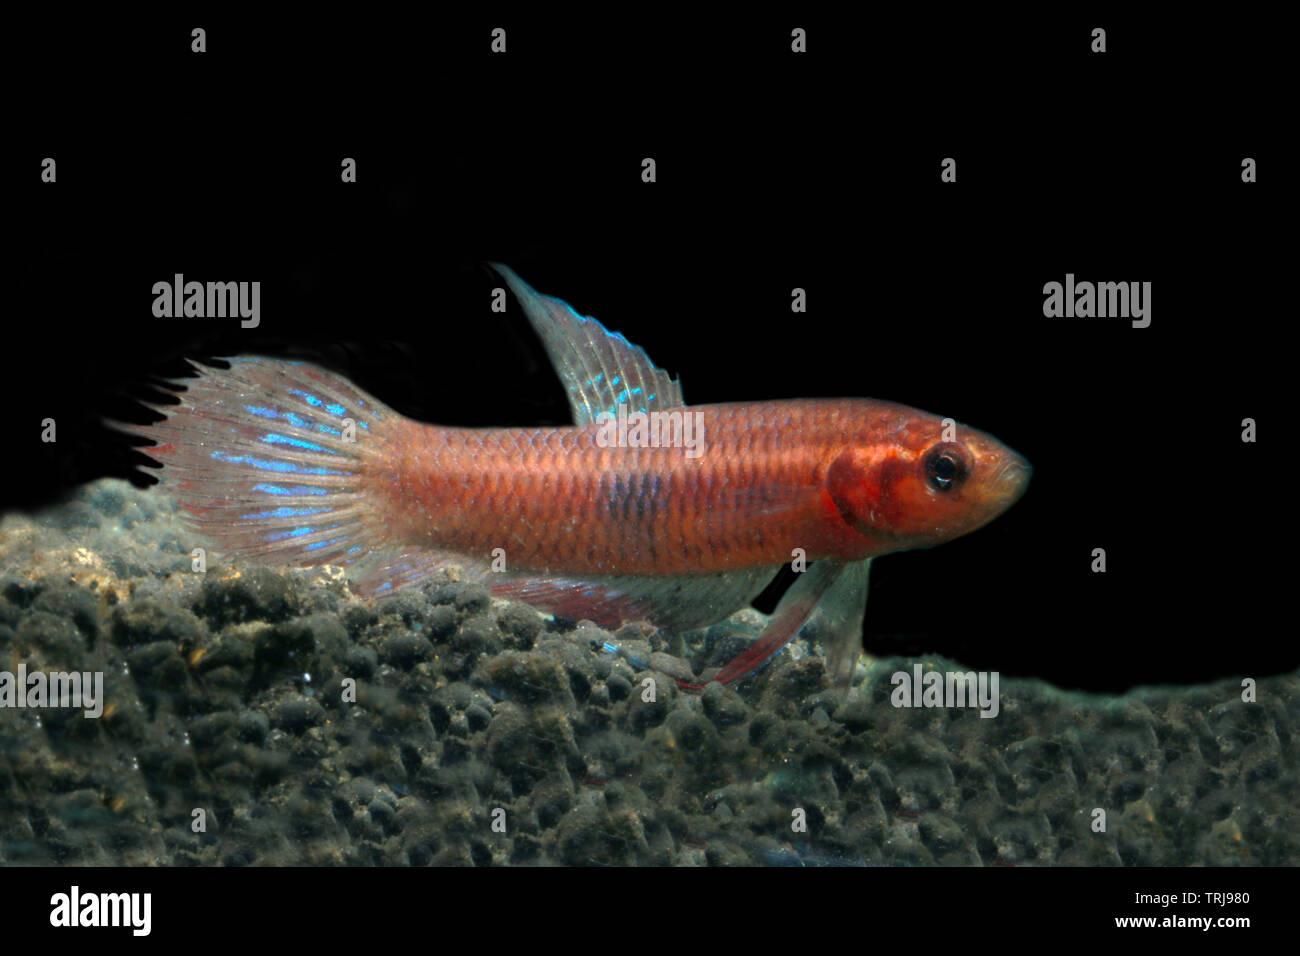 Betta Livida, jealous betta - Stock Image